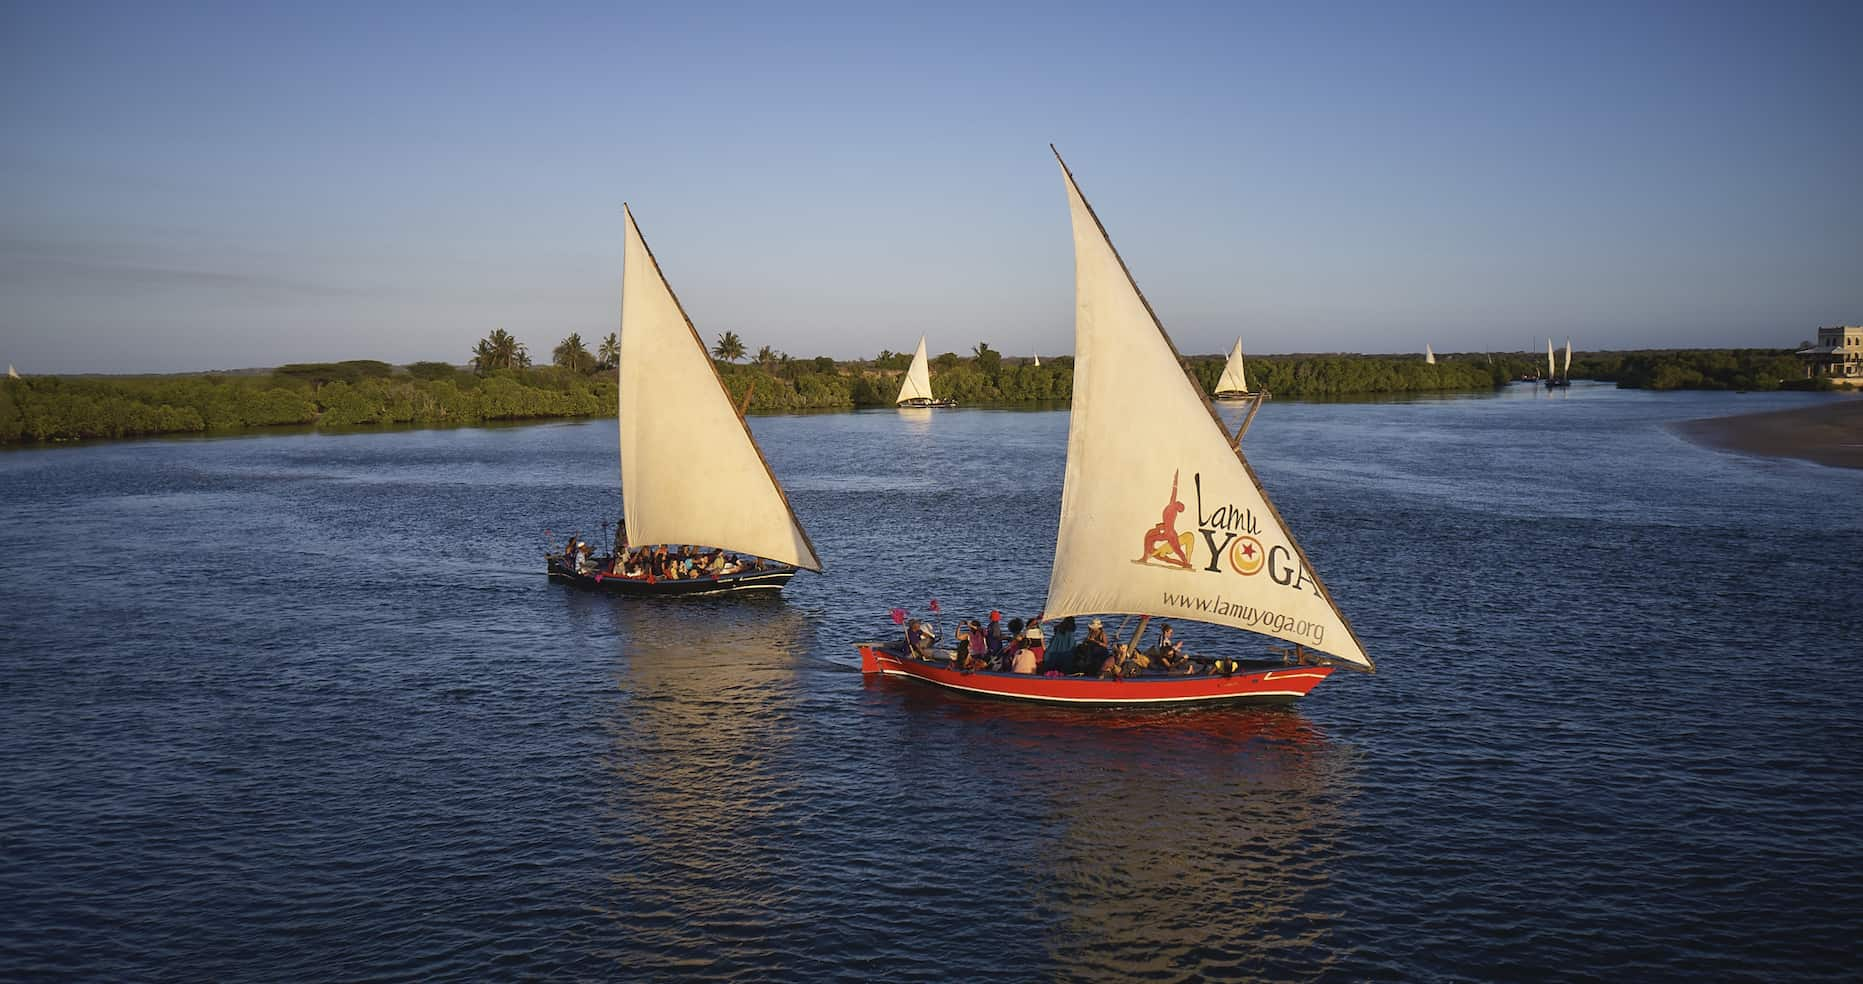 Dhows sailing during the LamuYoga Festival